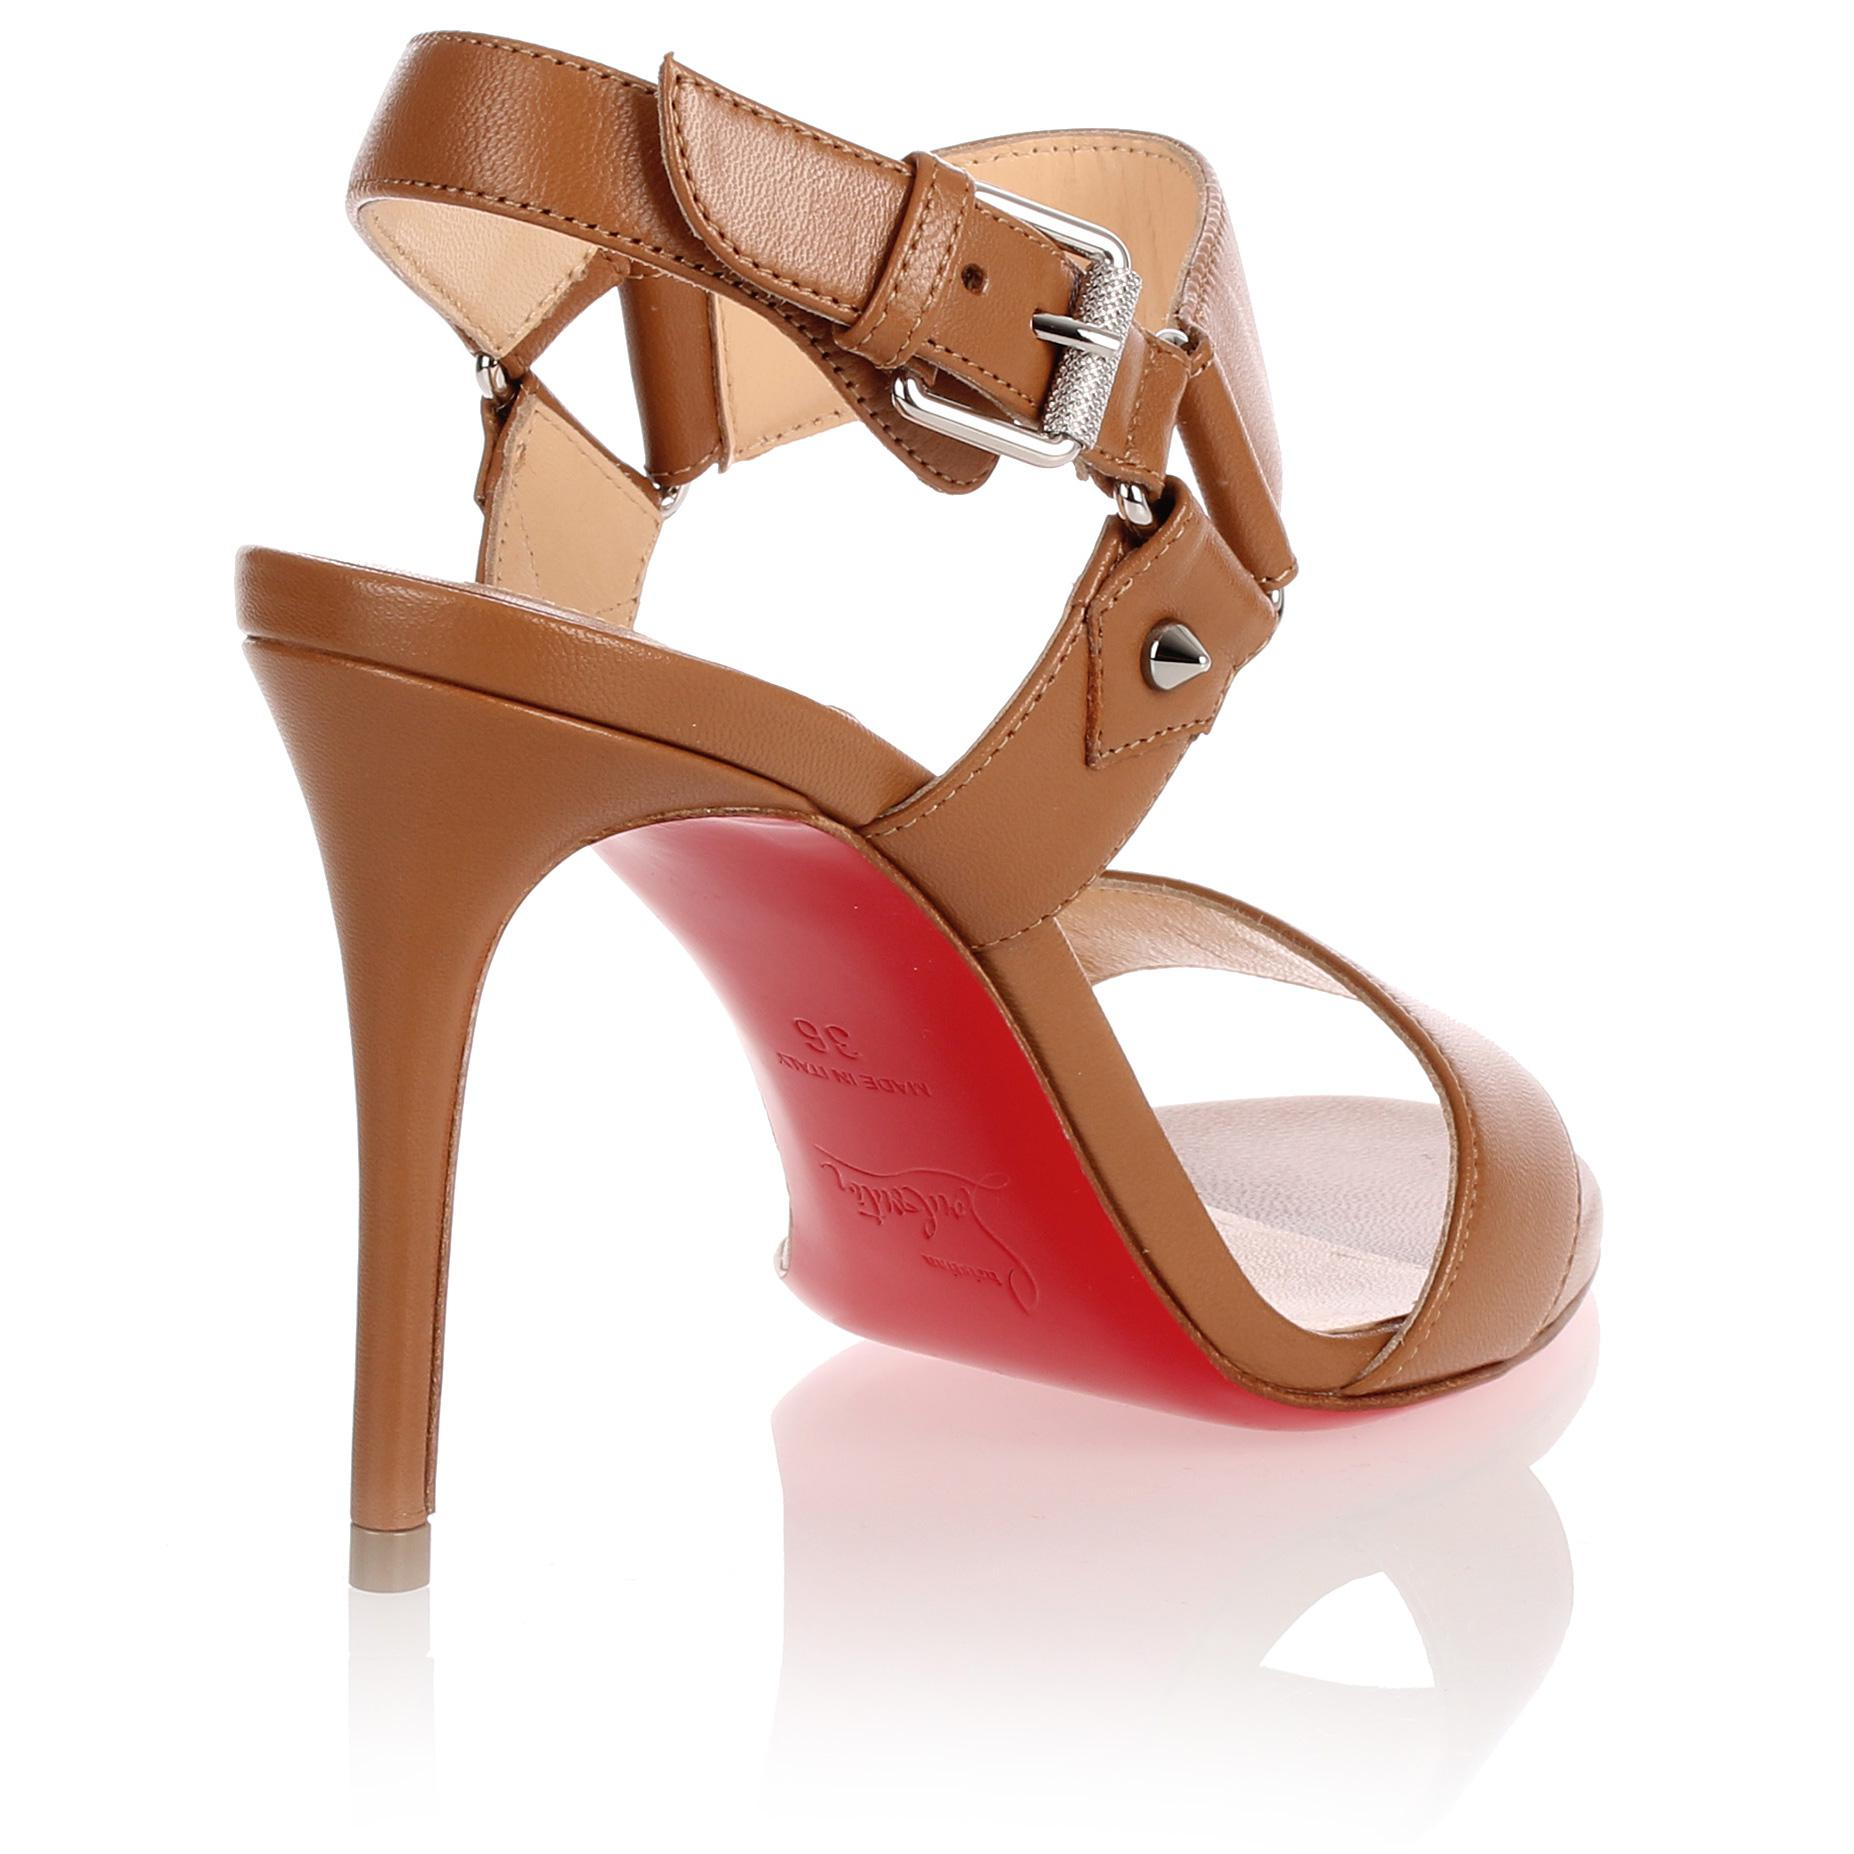 Geniue Stockist For Sale Buy Cheap Official Site Sova Heel 85 brown leather sandal Christian Louboutin Cheap Sale Largest Supplier h5l90wnwyU